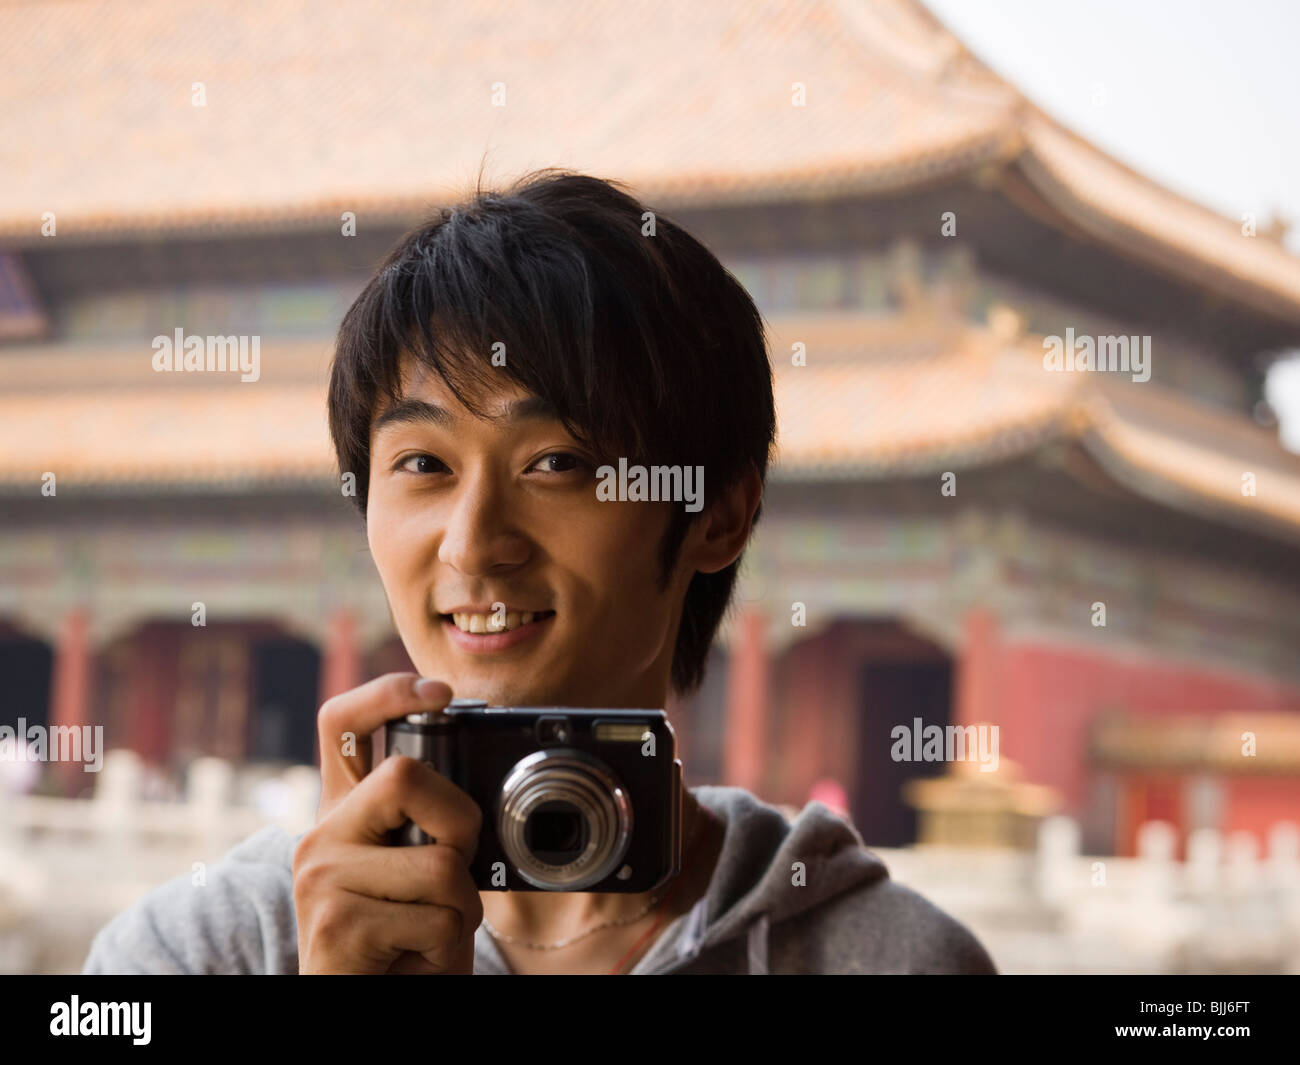 Teenage boy outdoors with digital camera smiling - Stock Image